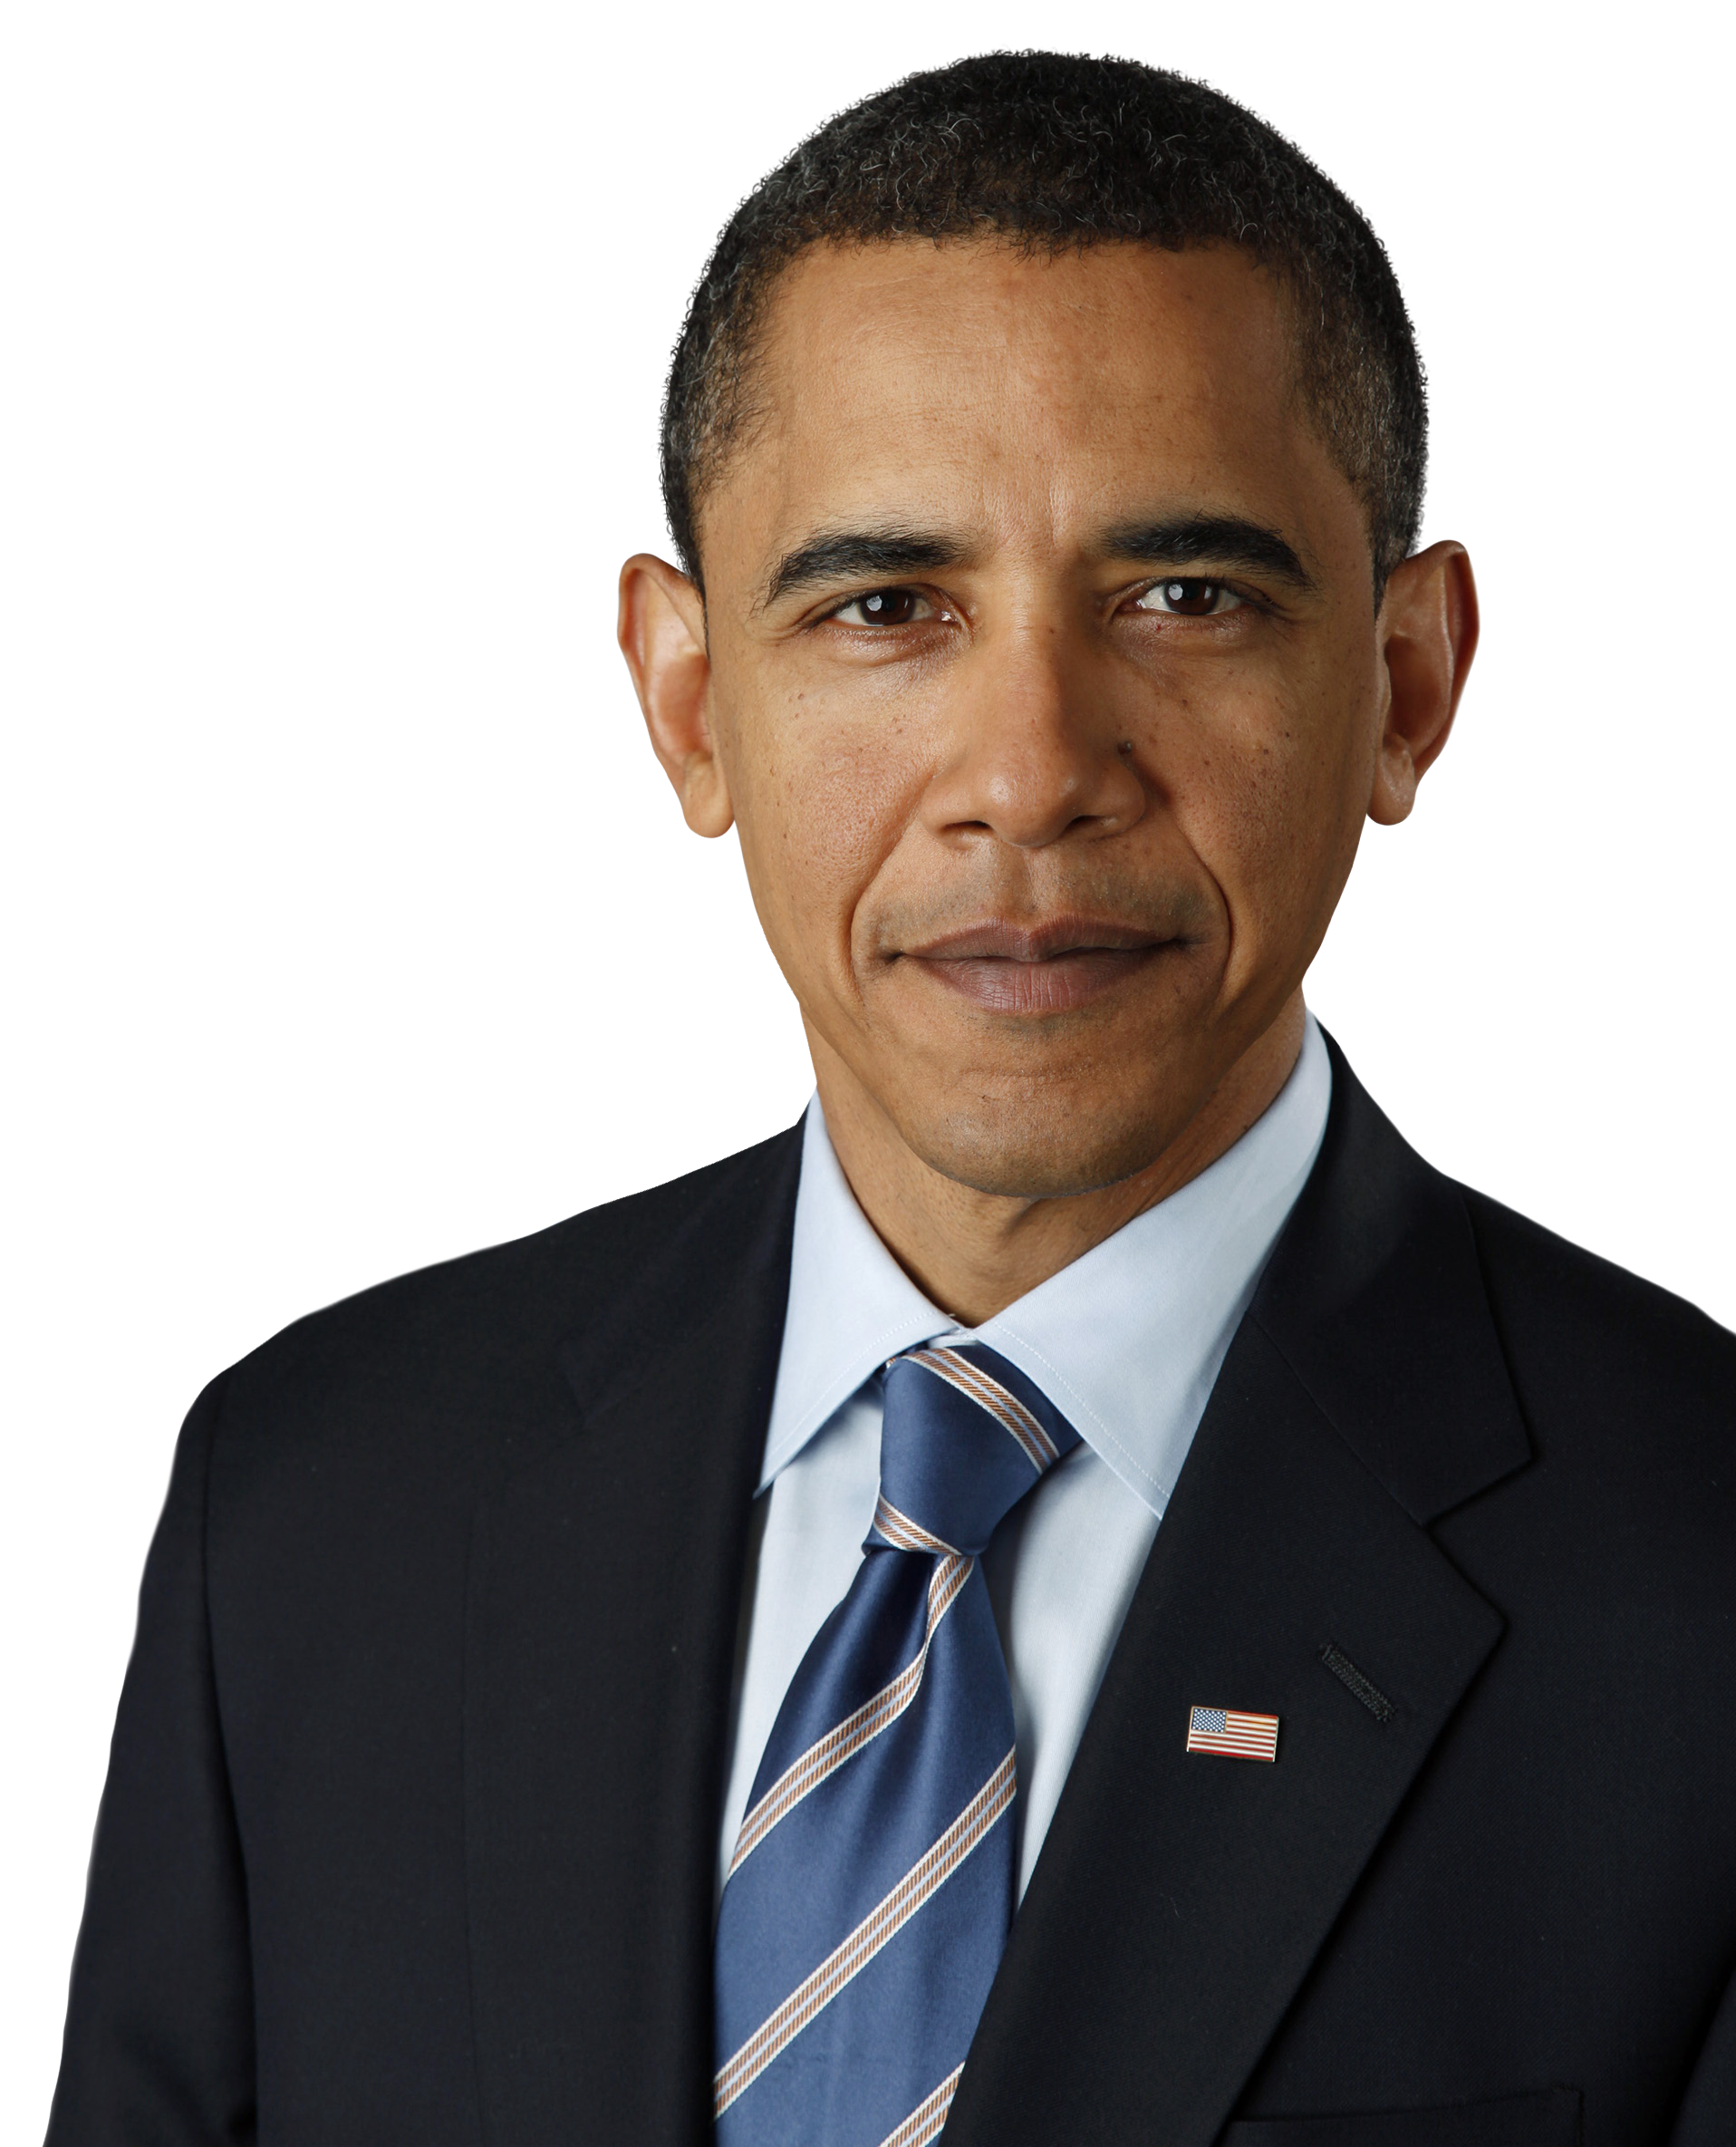 PNG images and cliparts for web designDownload PNG image: Barack Obama PNG Barack Obama PNG image with transparent backgroundAlso you may like PNG images